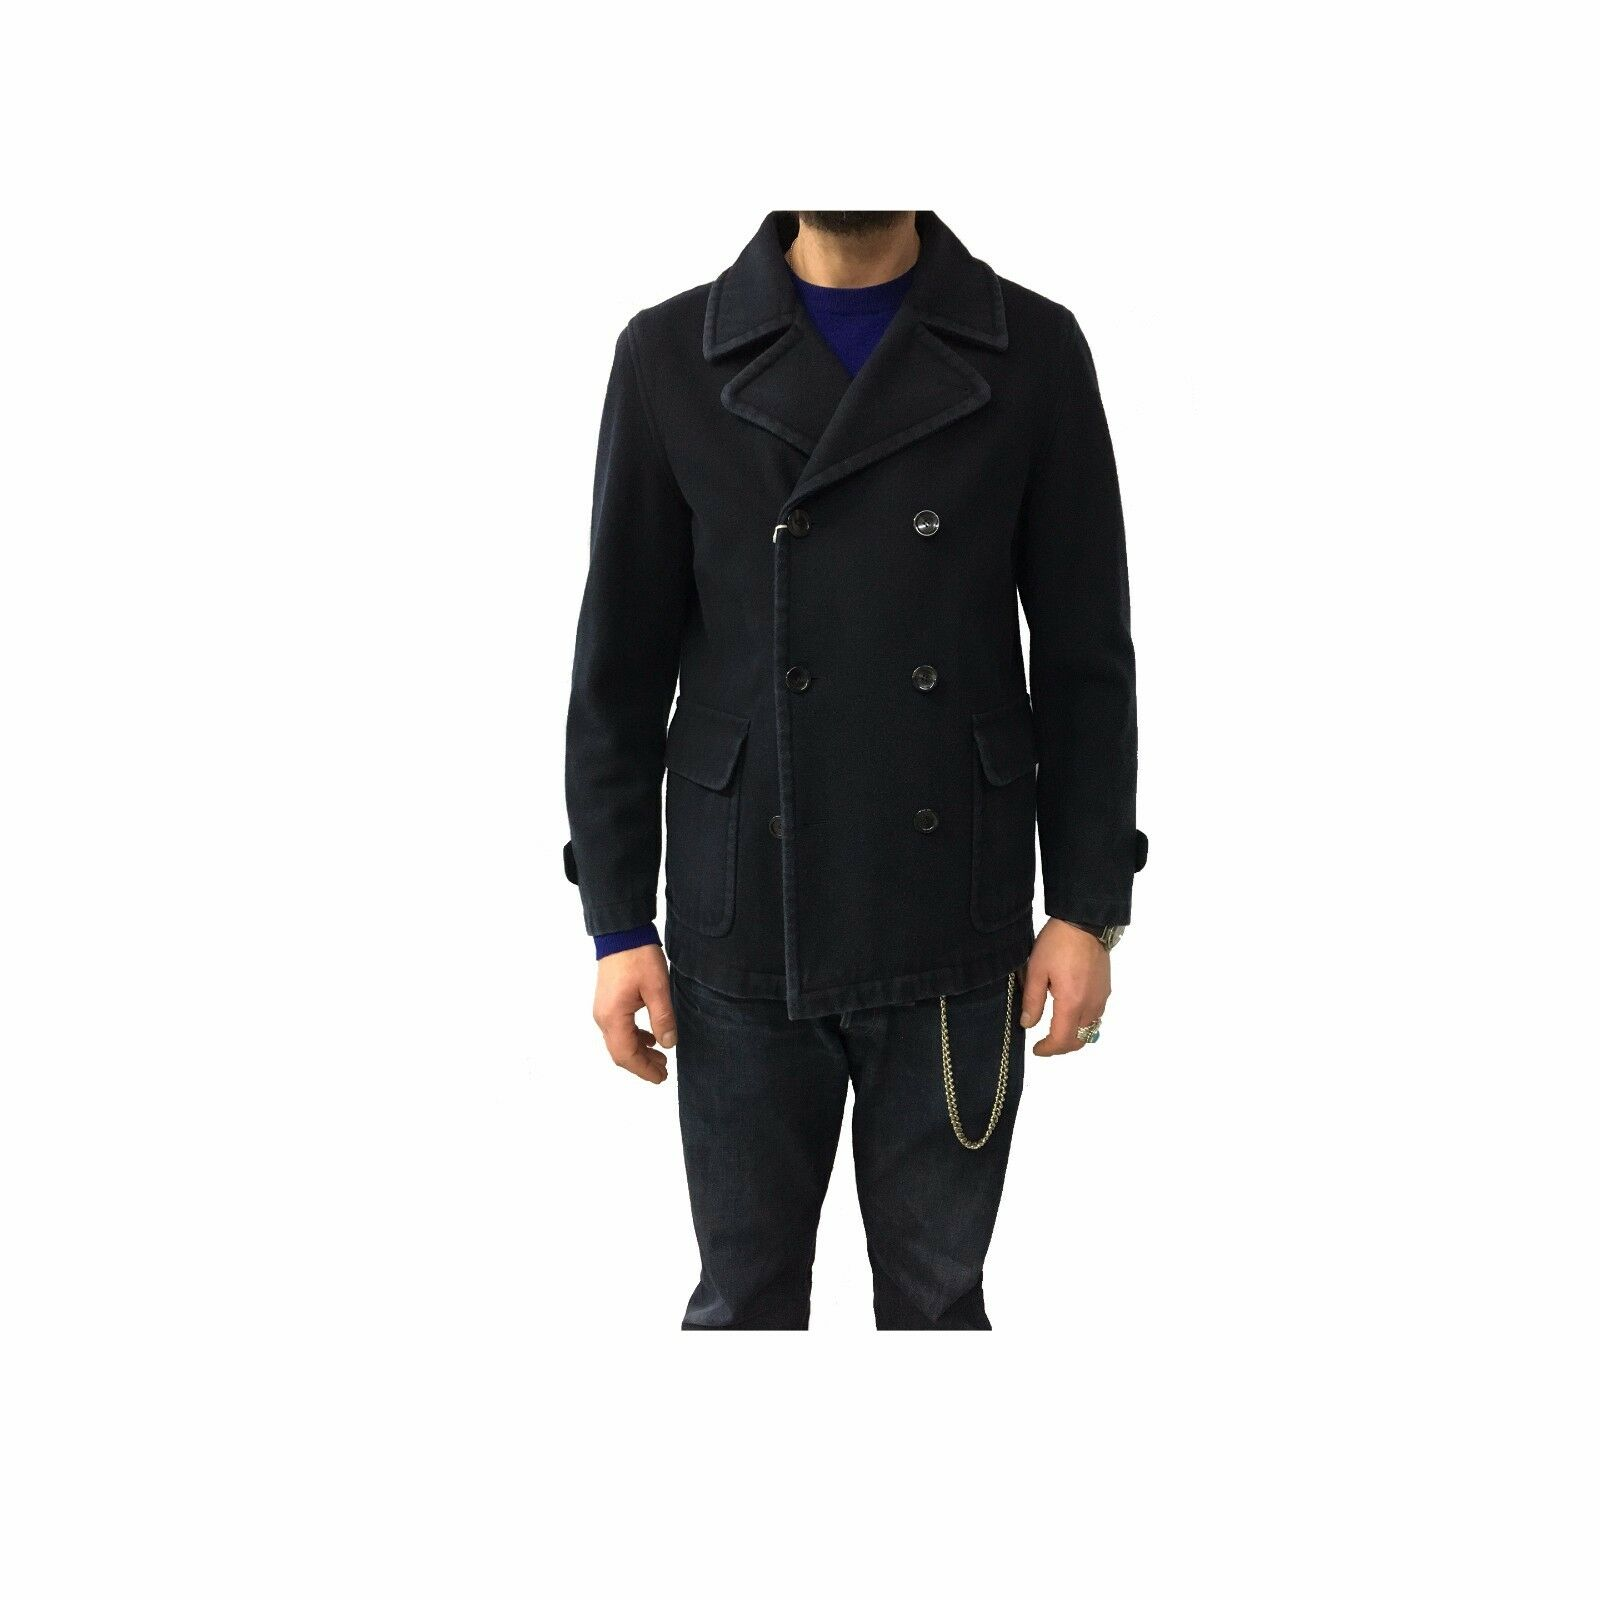 Fly3 Mens Coat Double-Breasted Wash Aged Made in